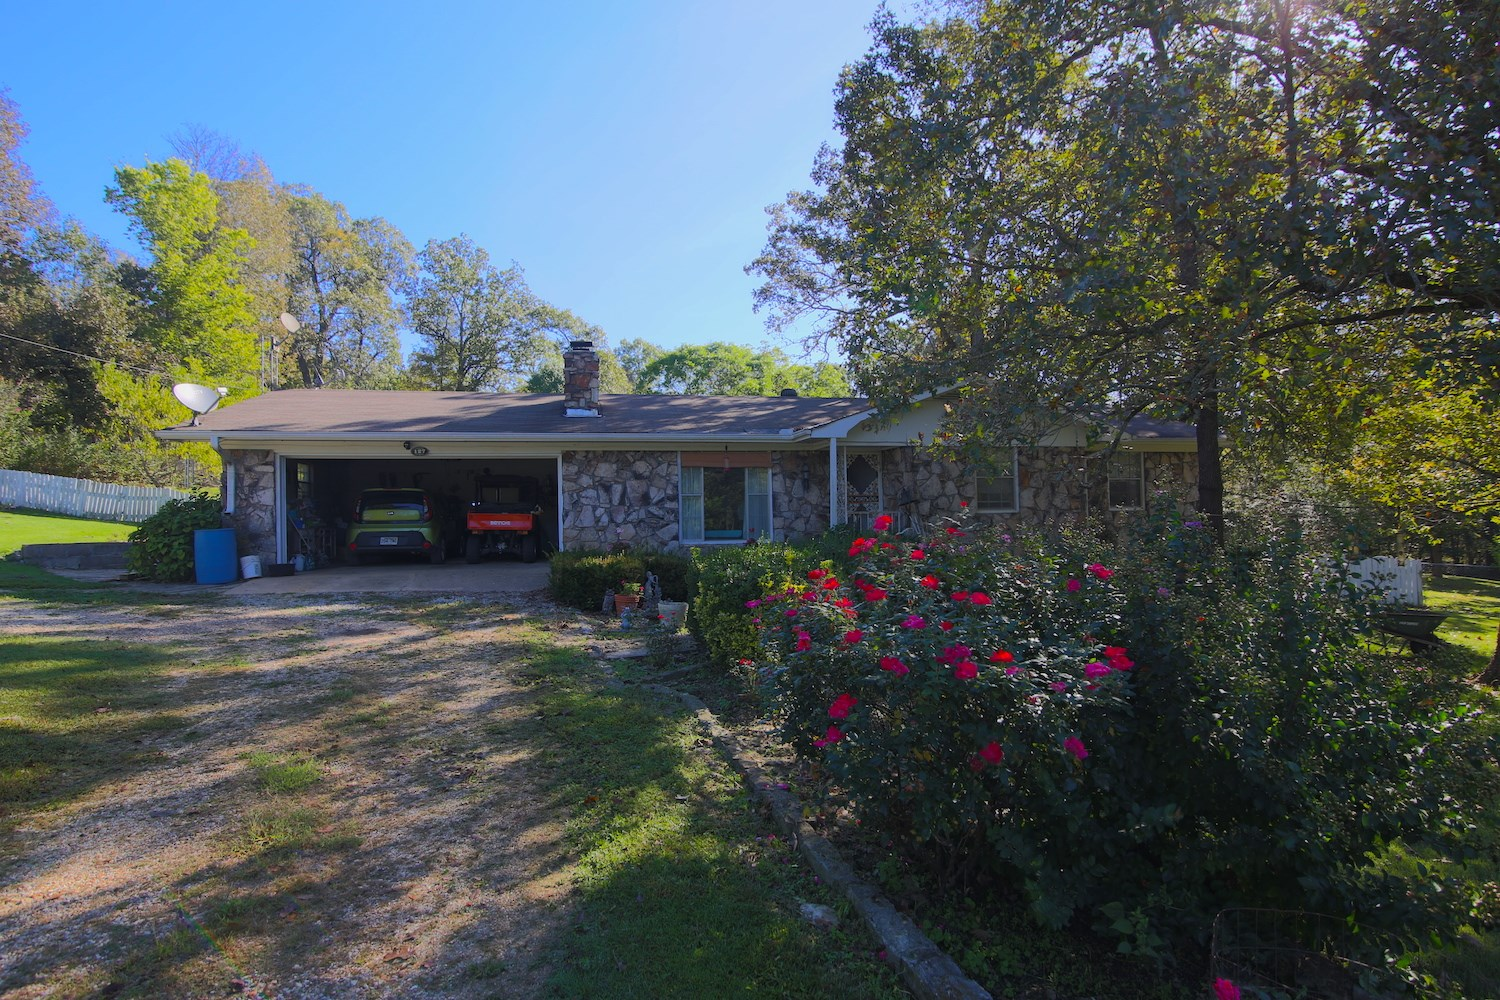 Home for Sale in Hardy, Arkansas